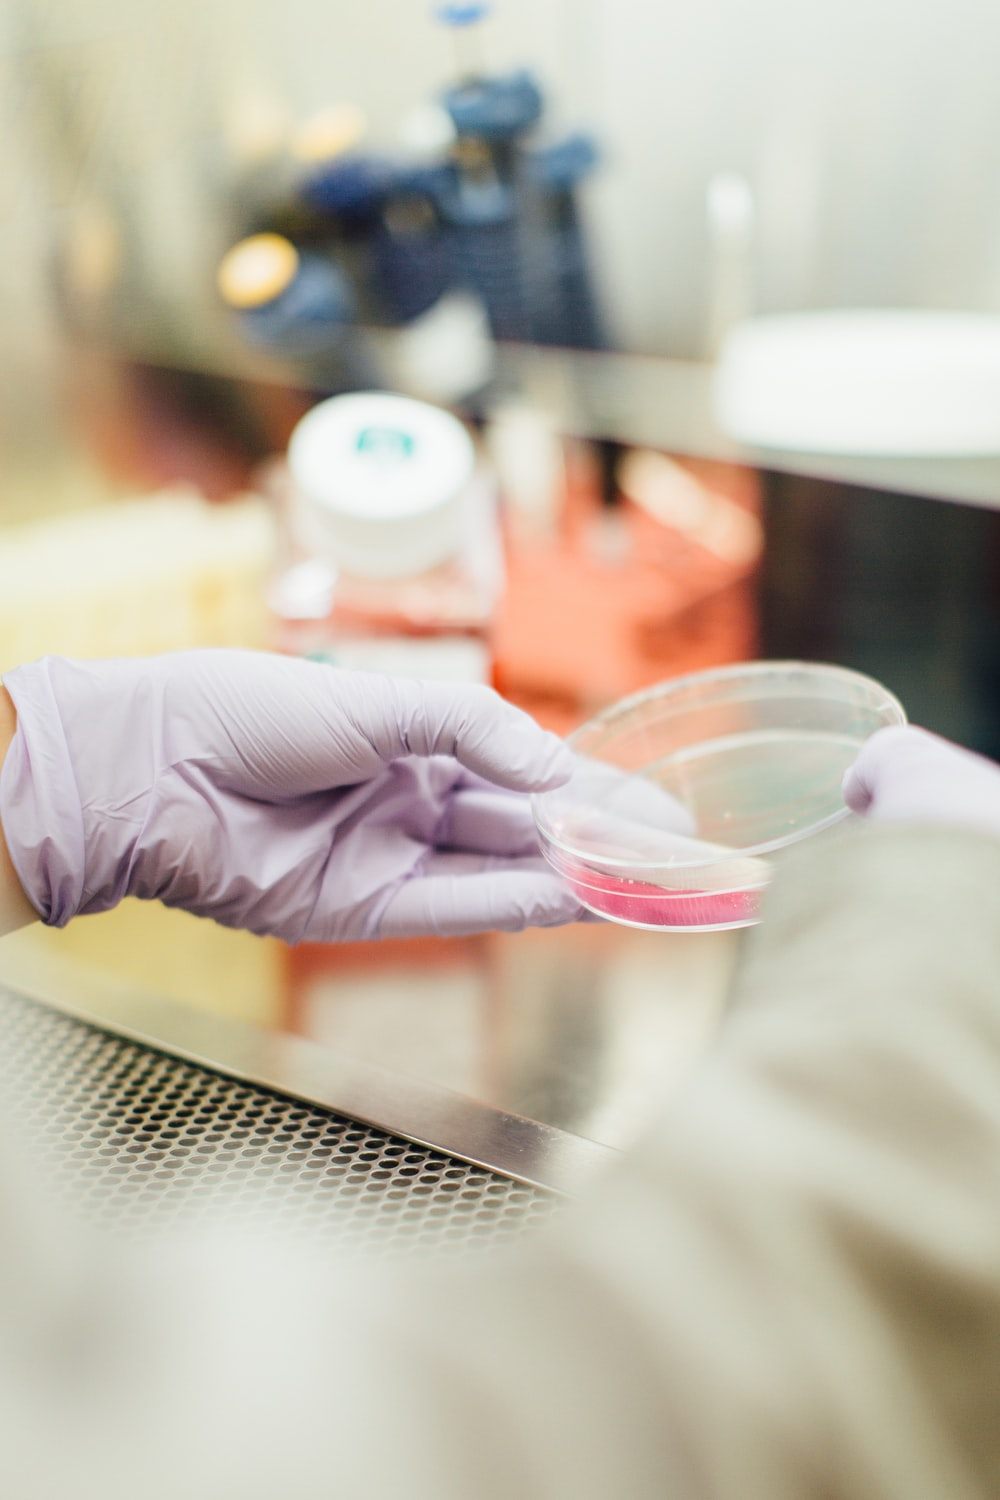 A scientist in rubber gloves holding a Petri dish with some liquid